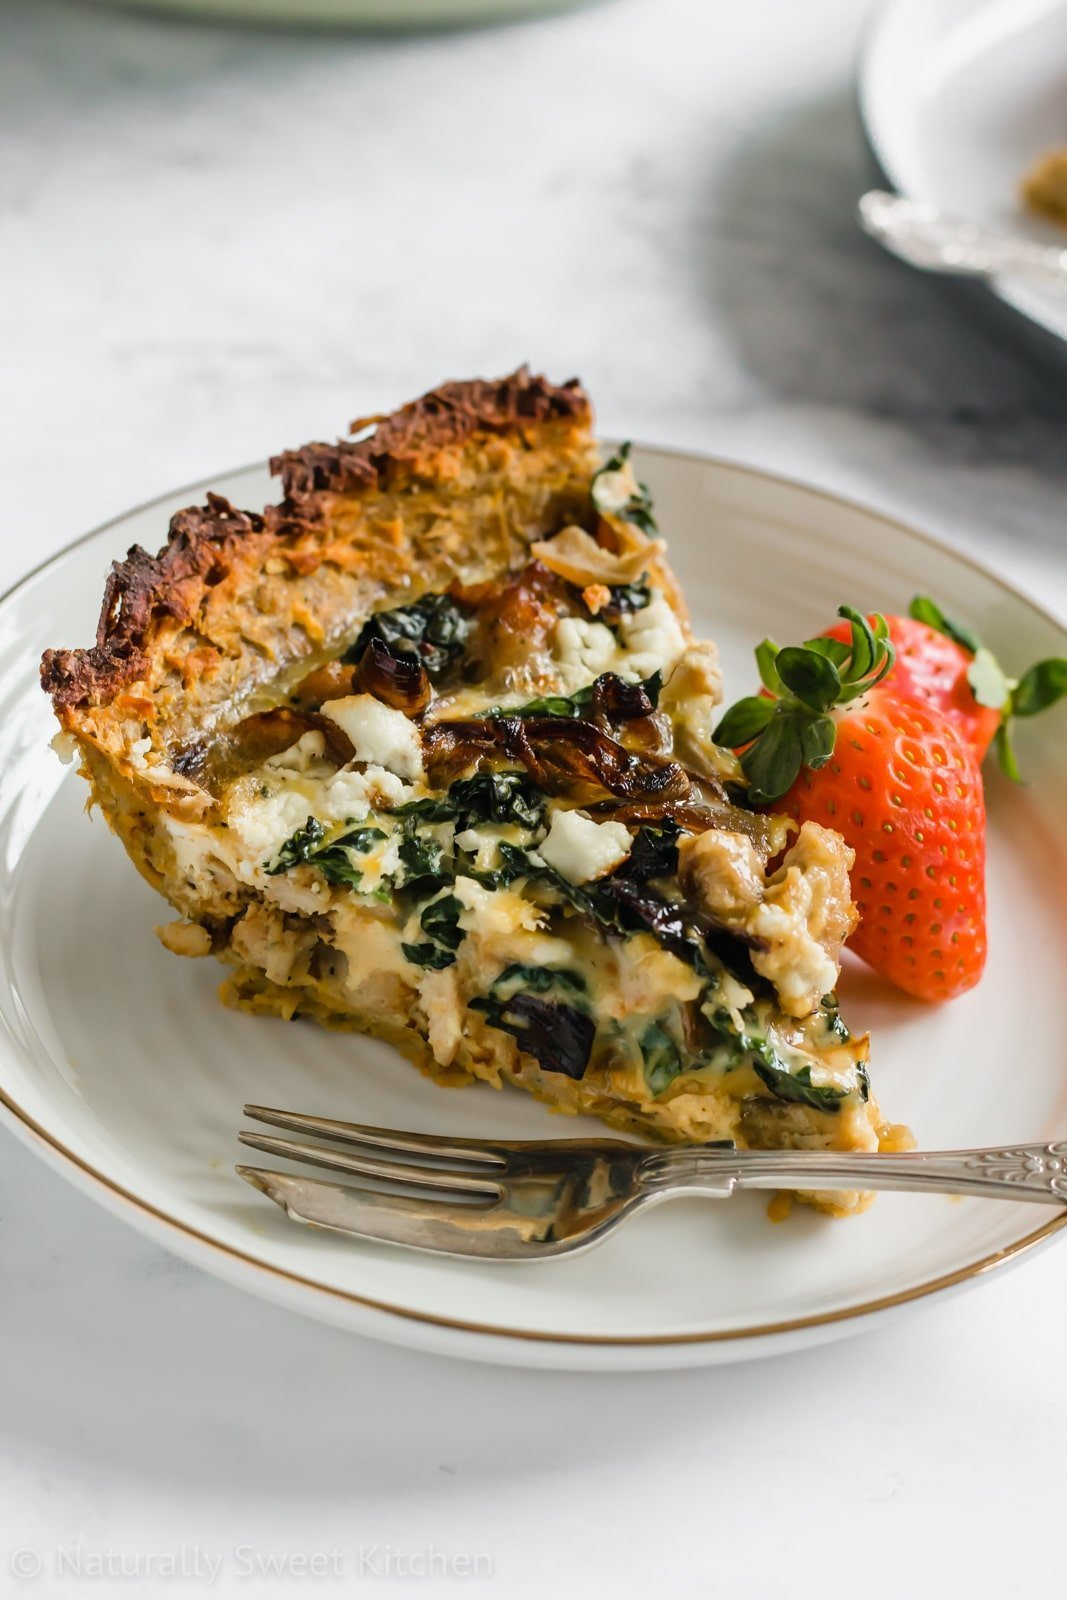 This easy quiche recipe is perfect for a special brunch and features a healthier alternative: a sweet potato crust! Paired with sausage, kale, goat cheese, caramelized onions, this is one sweet potato crust quiche recipe you'll want to make again and again. Get this recipe and other refined sugar free recipes at naturallysweetkitchen.com #brunch #breakfast #brunchrecipe #eggrecipe #naturallysweetkitchen #sugarfree #caramelizedonions #kale #sweetpotato #baking